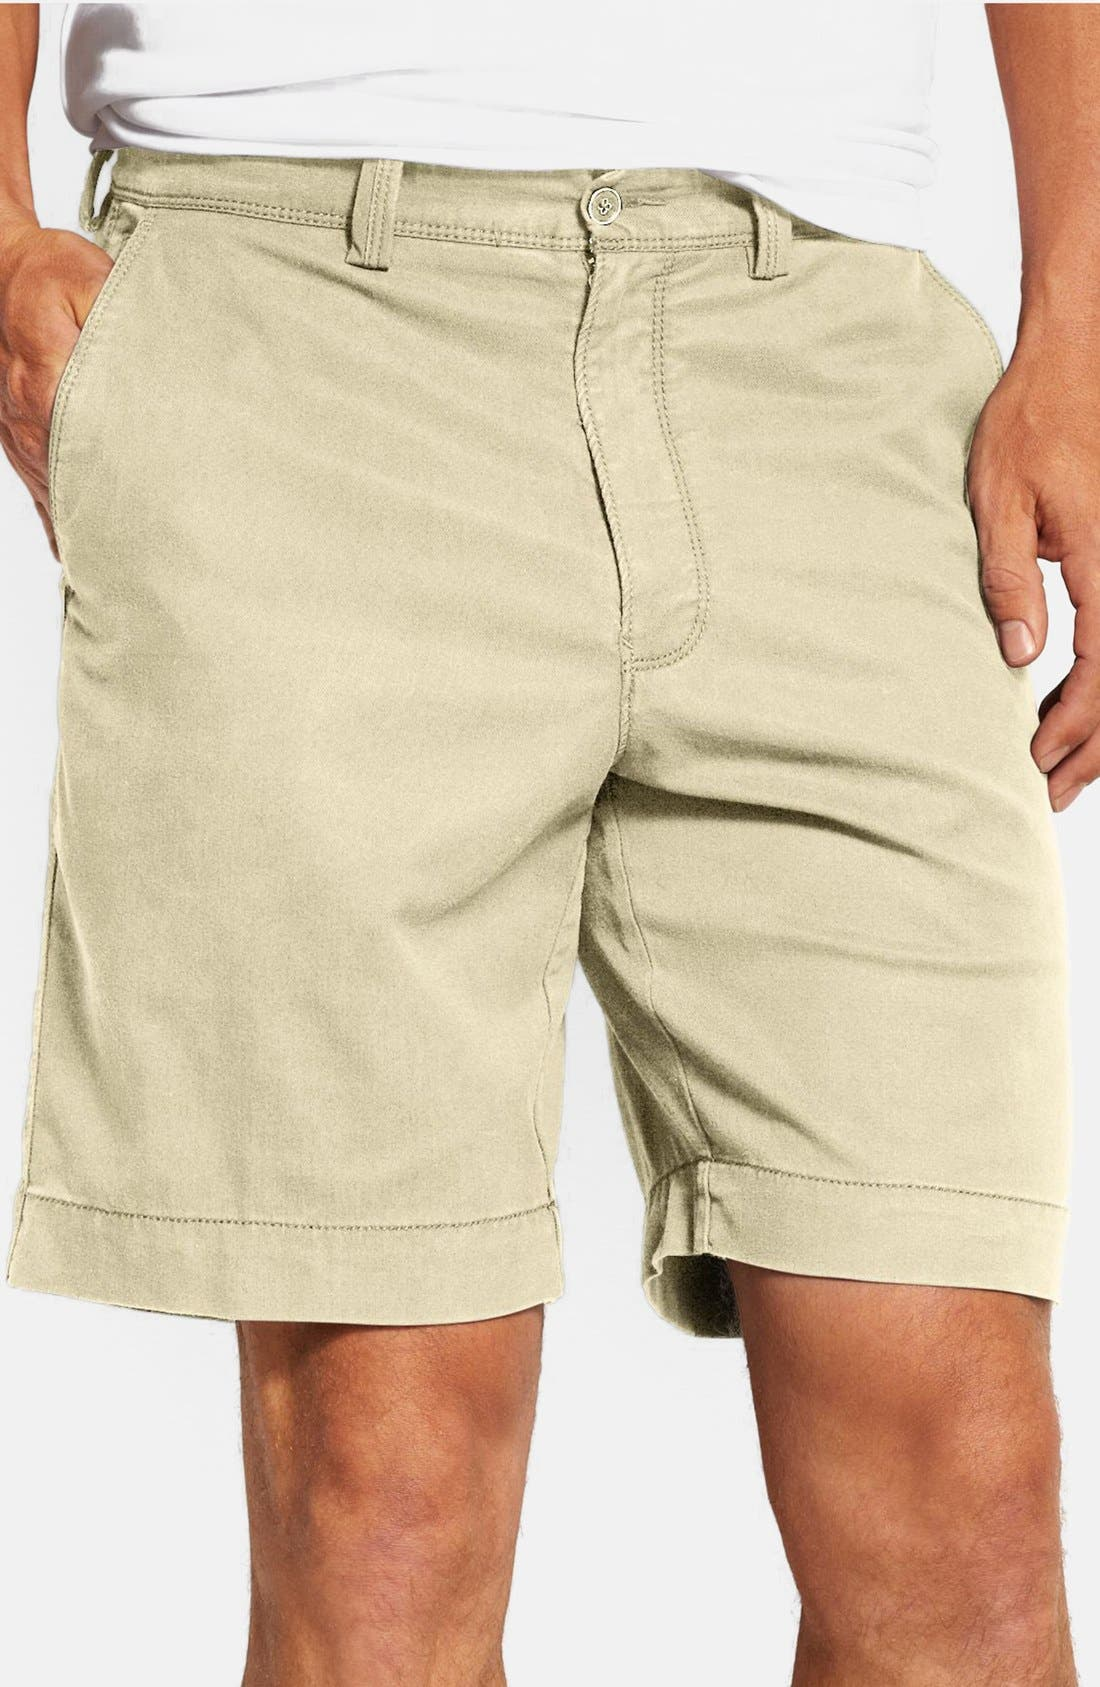 Main Image - Tommy Bahama 'Ashore Thing' Shorts (Big and Tall) (Online Only)